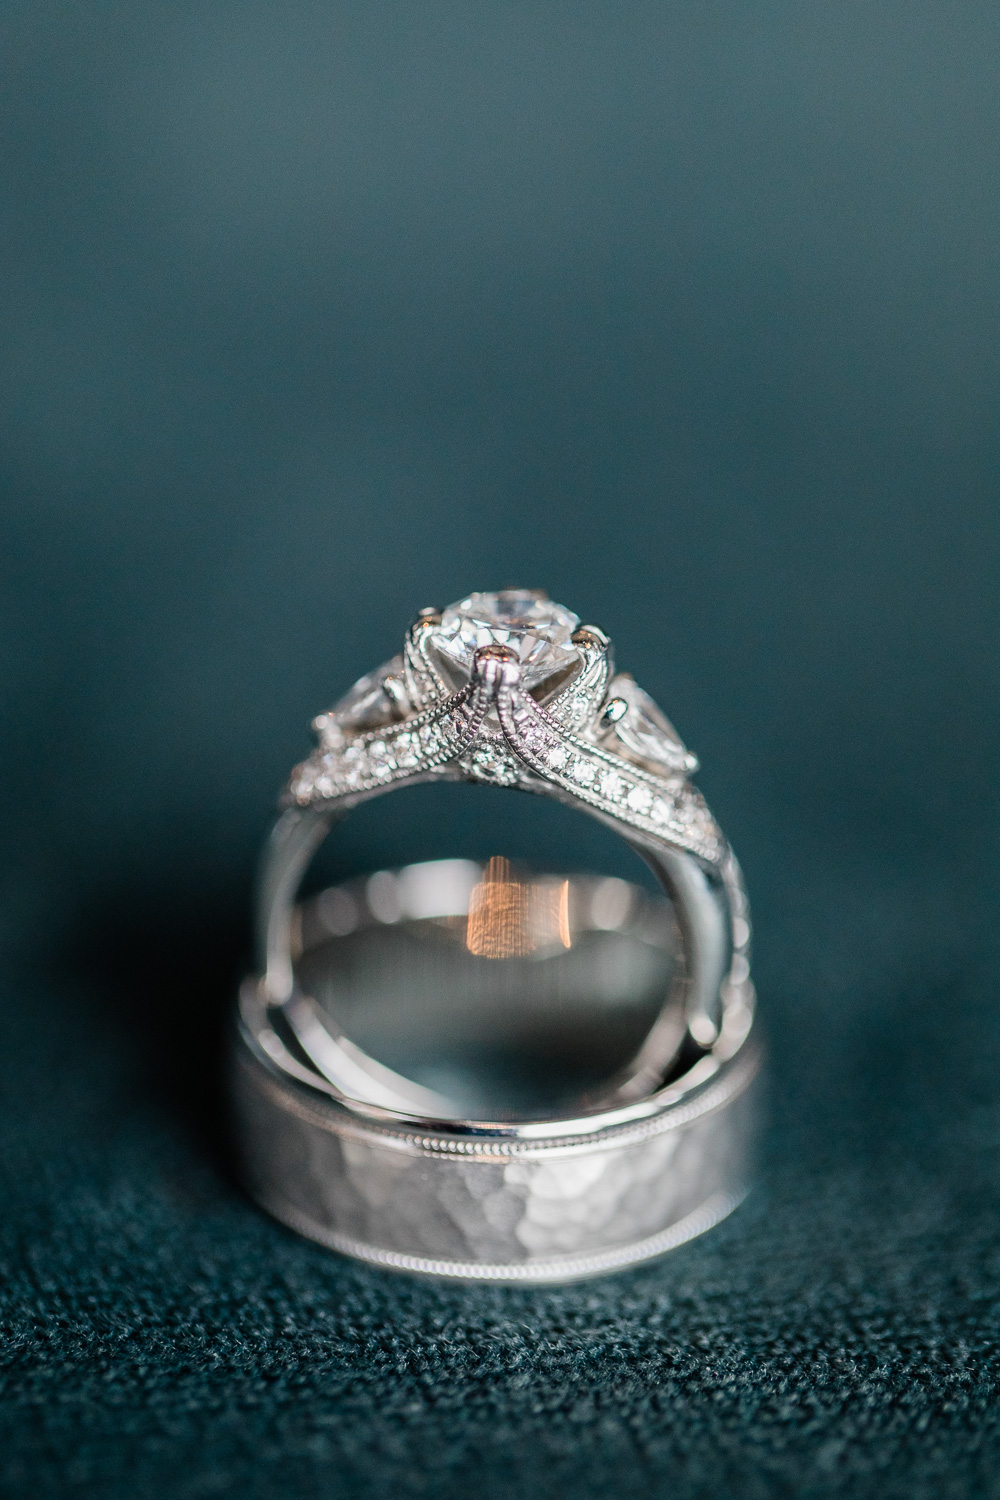 Wedding Rings by Truly Zac Posen